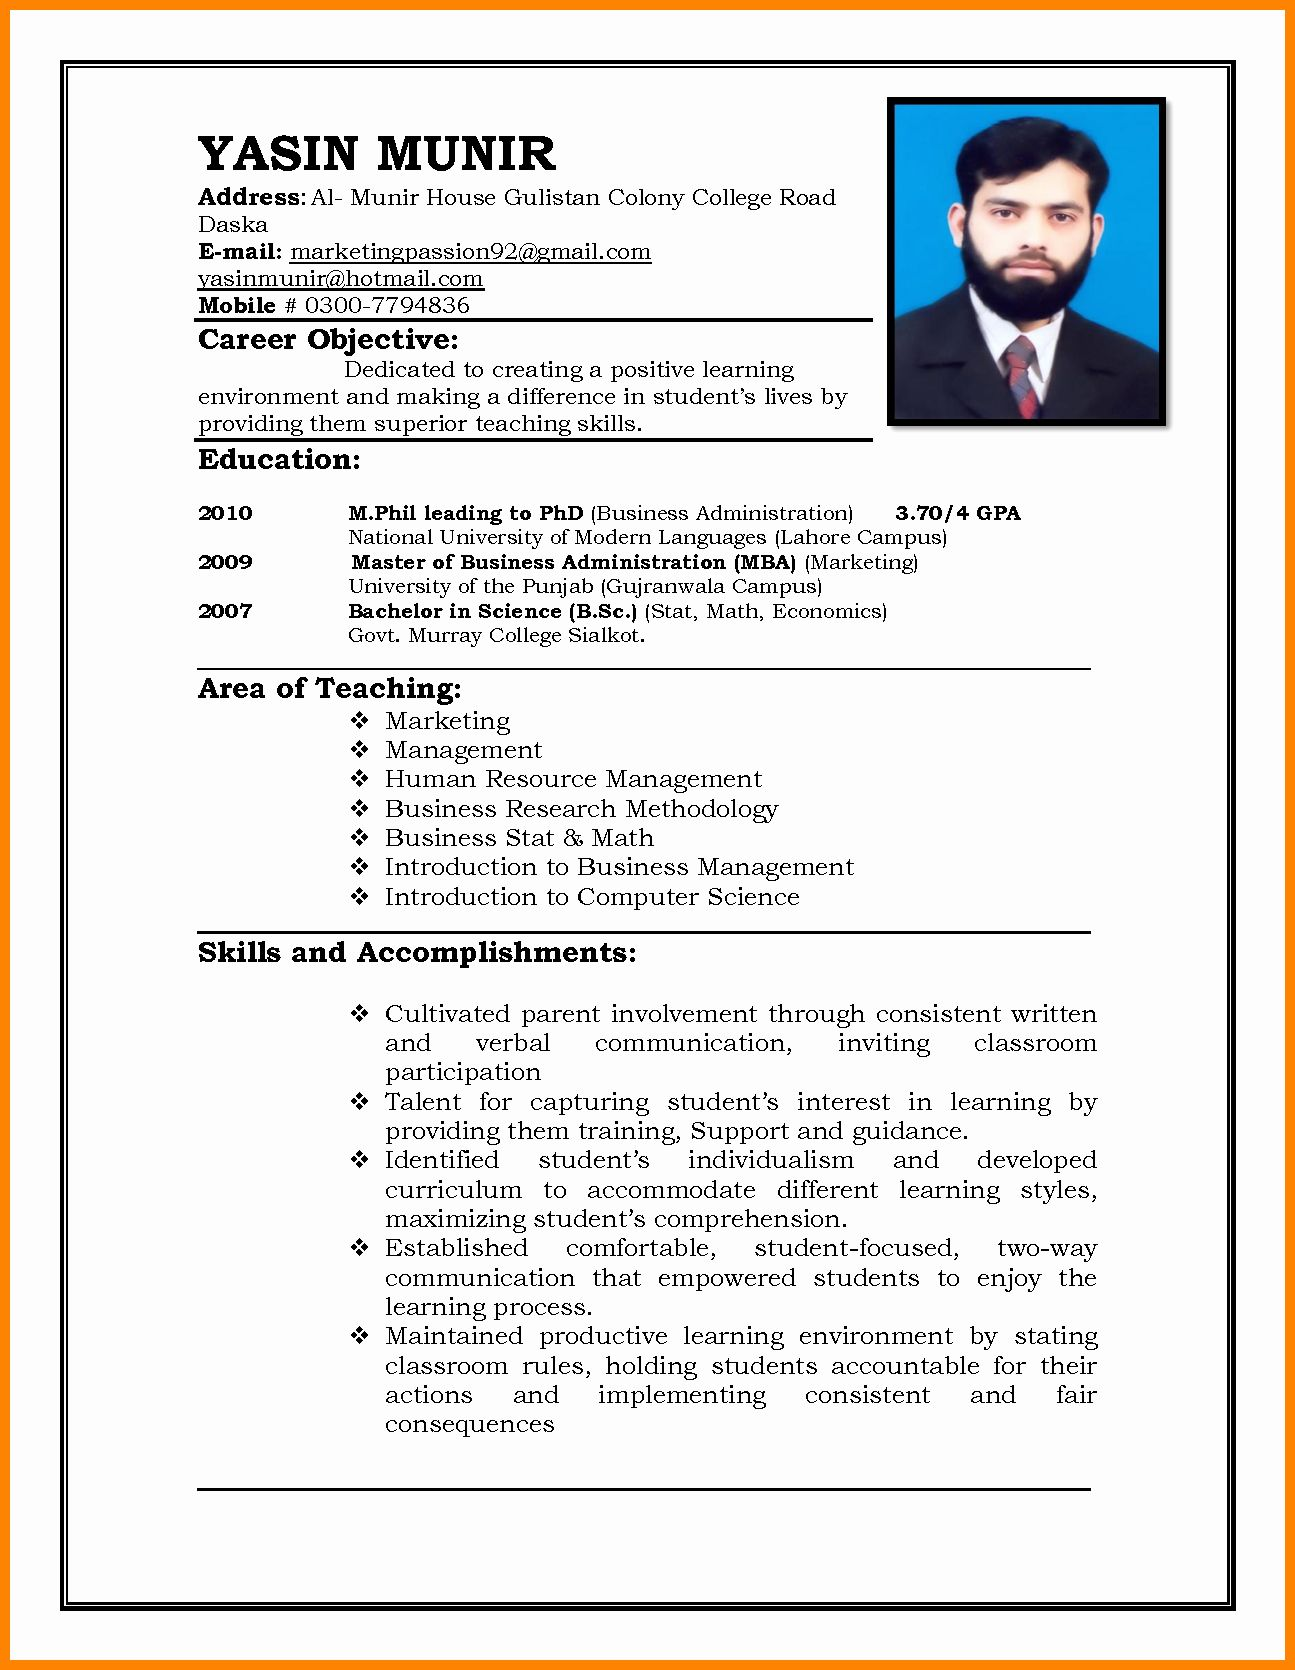 30 Format For Curriculum Vitae In 2020 With Images Job Resume Format Teaching Resume Job Resume